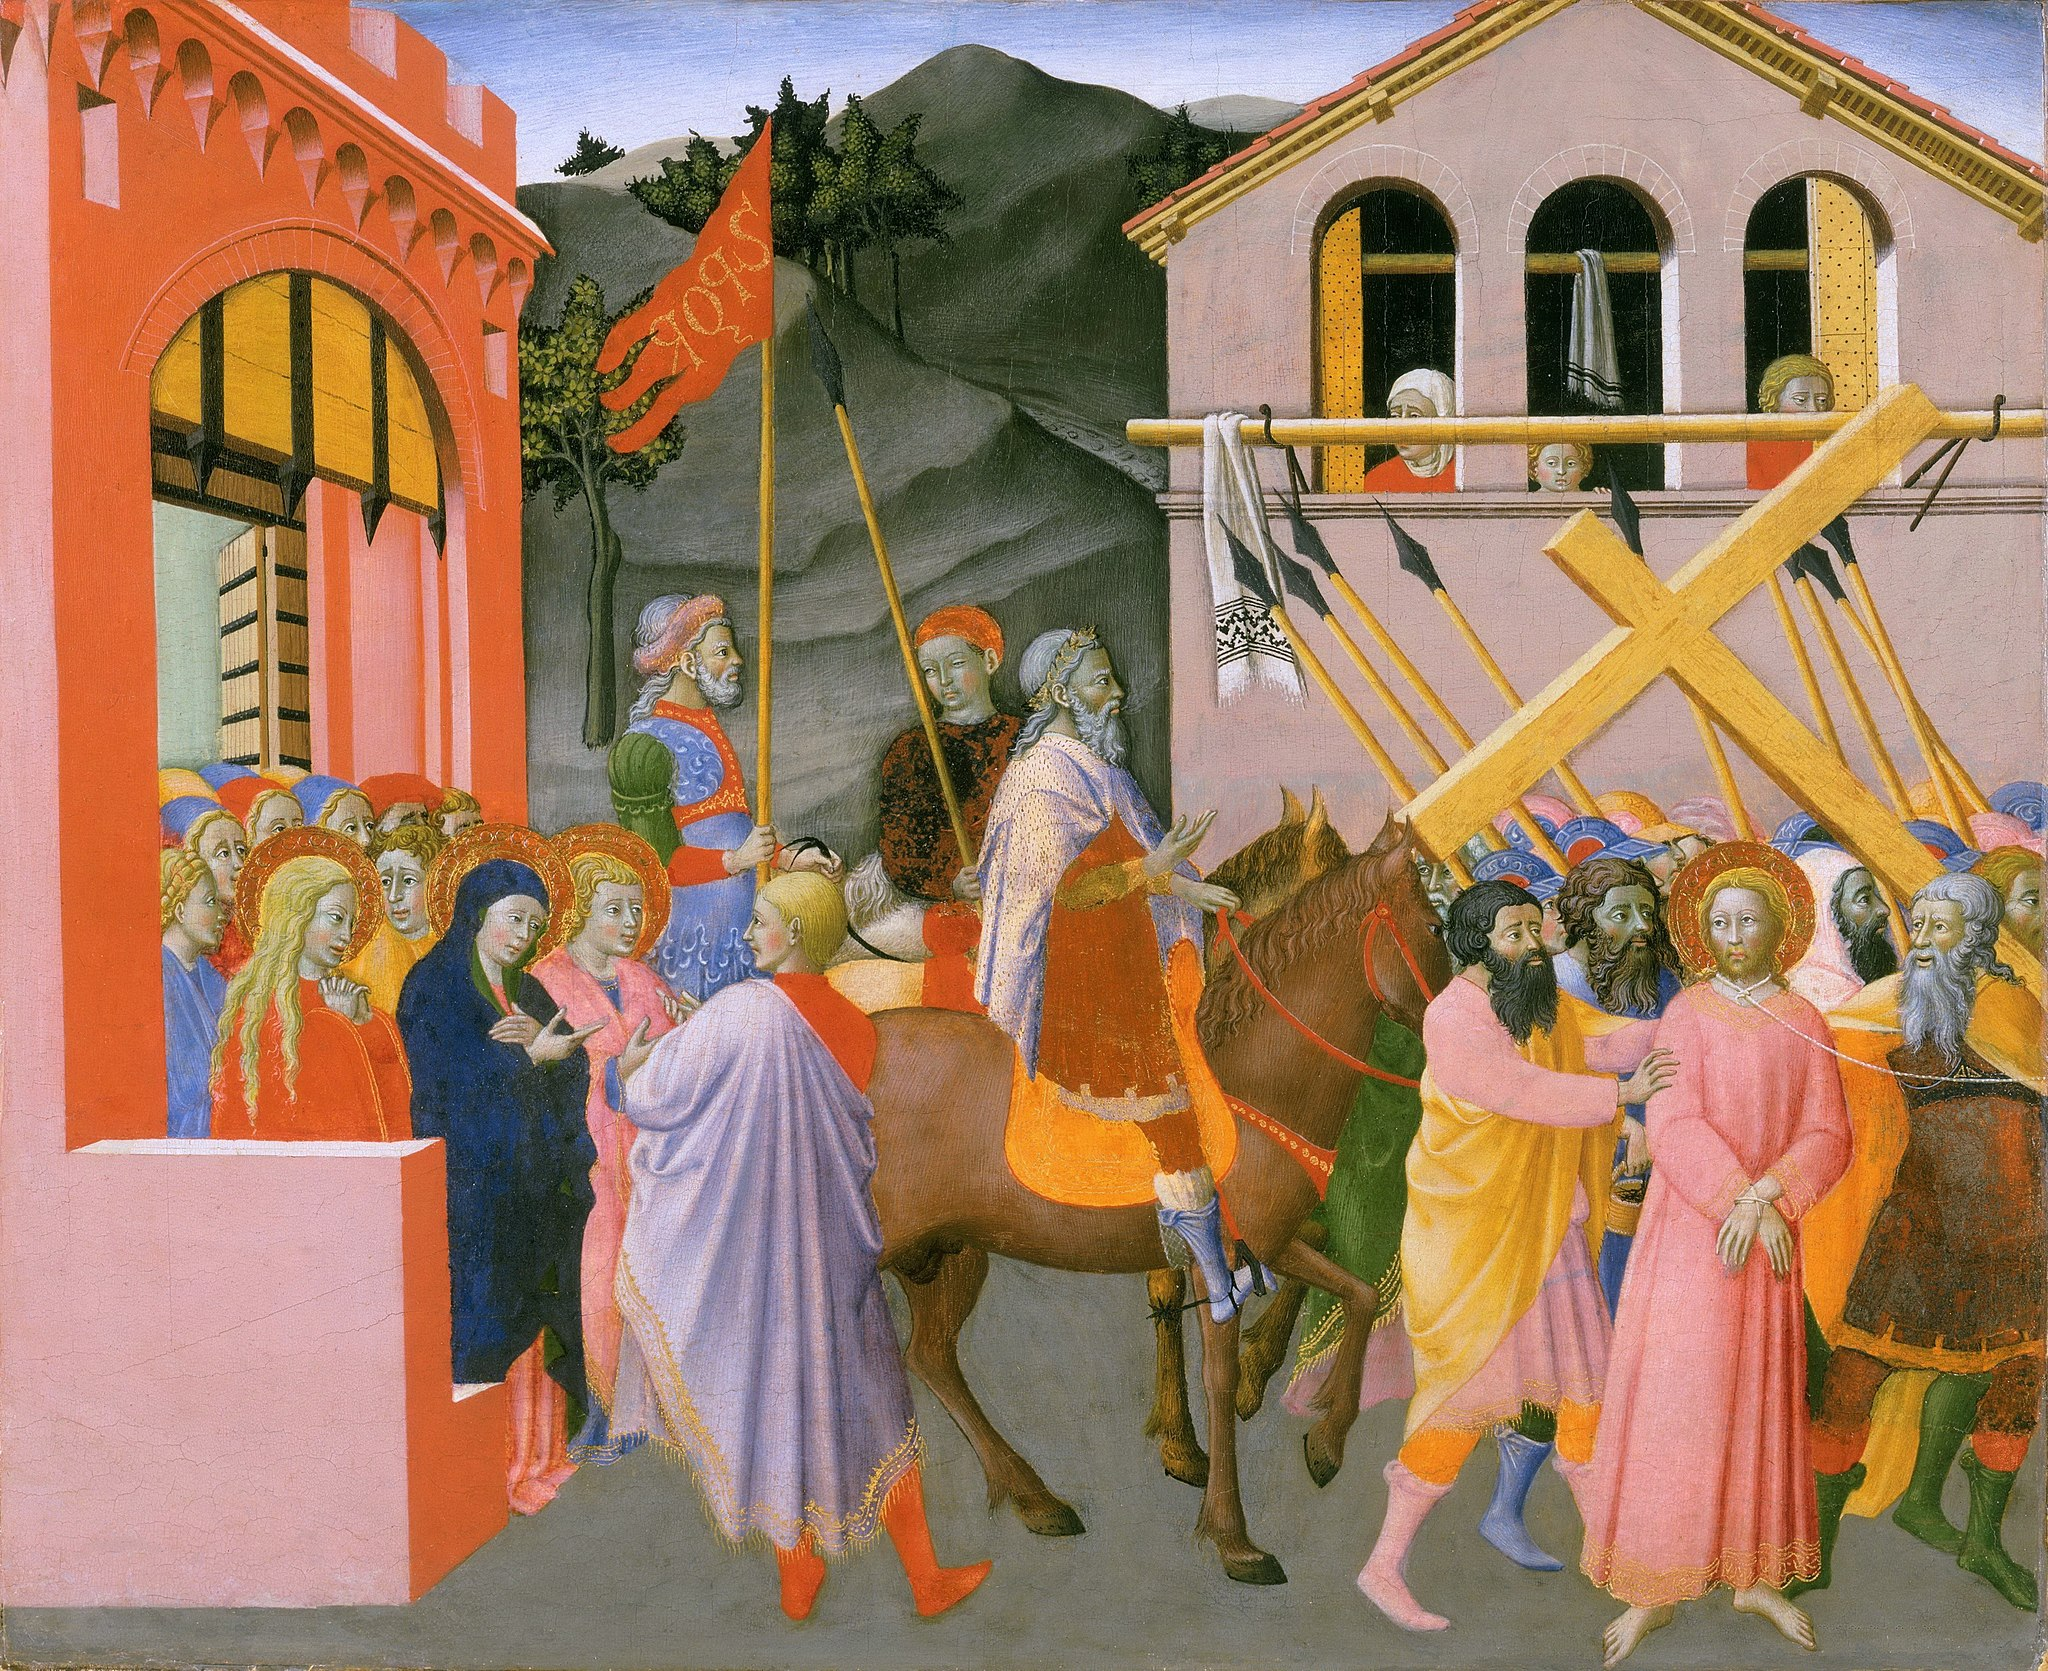 Master of Osservanza, Way to Calvary, about 1440-1444, tempera and gold on panel; 36.8 x 46.8 cm (whole panel), Philadelphia, Museum of Art